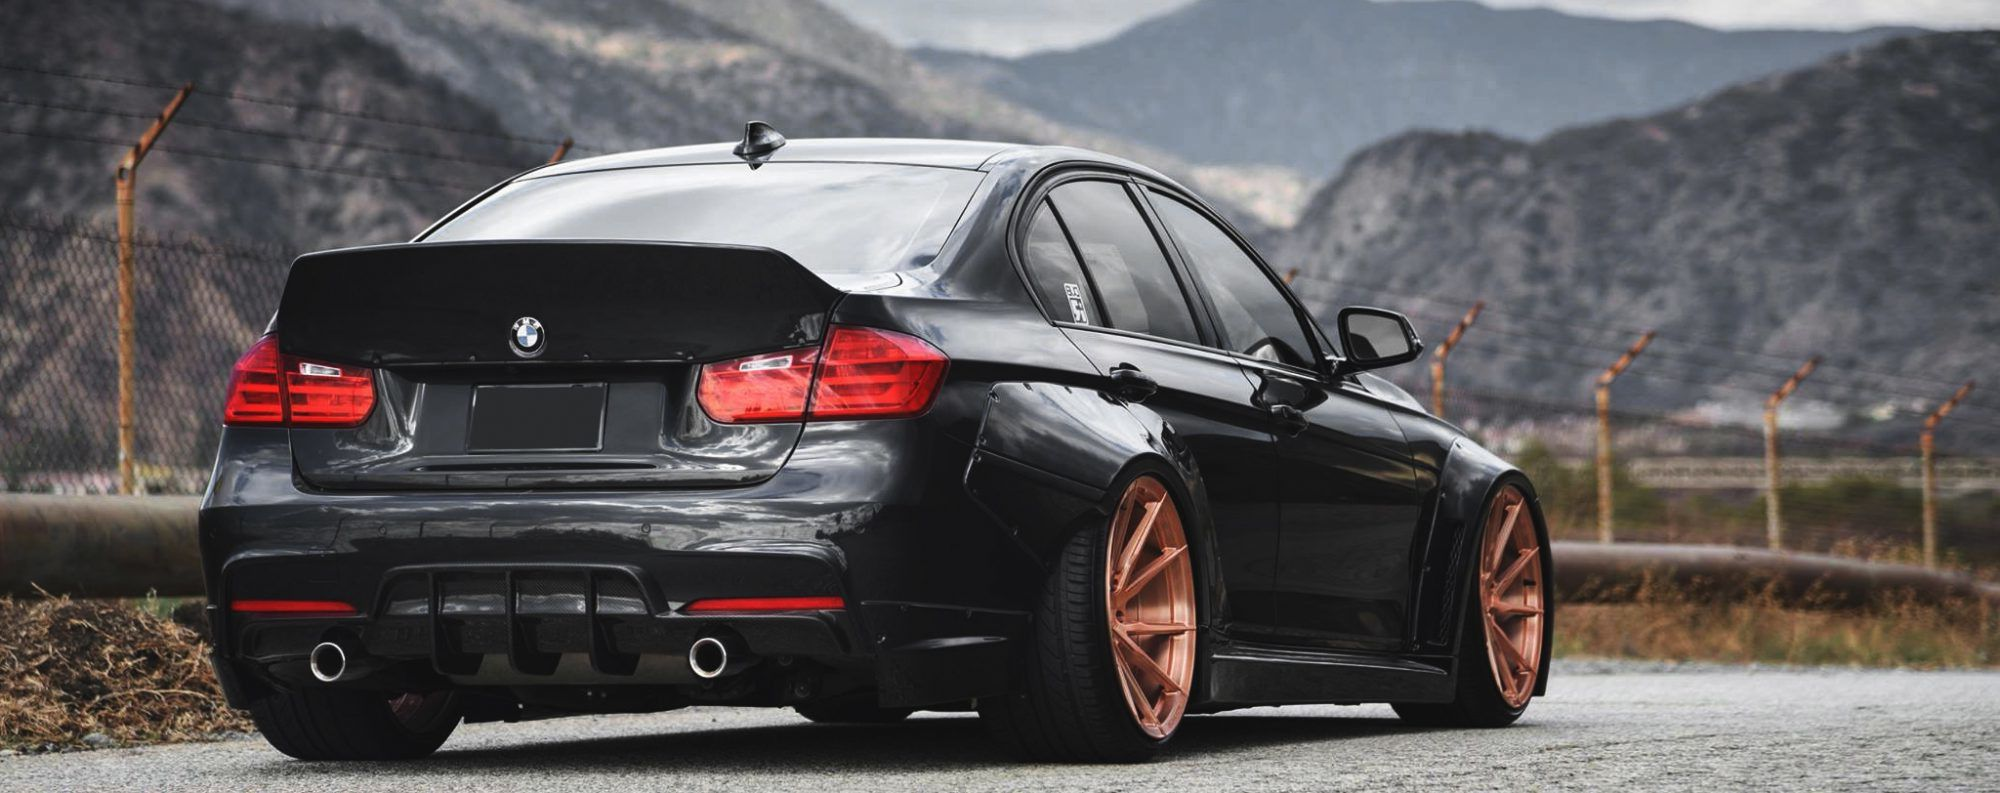 bmw m3 f30 wide body kit high resolution wallpaper - HD ...